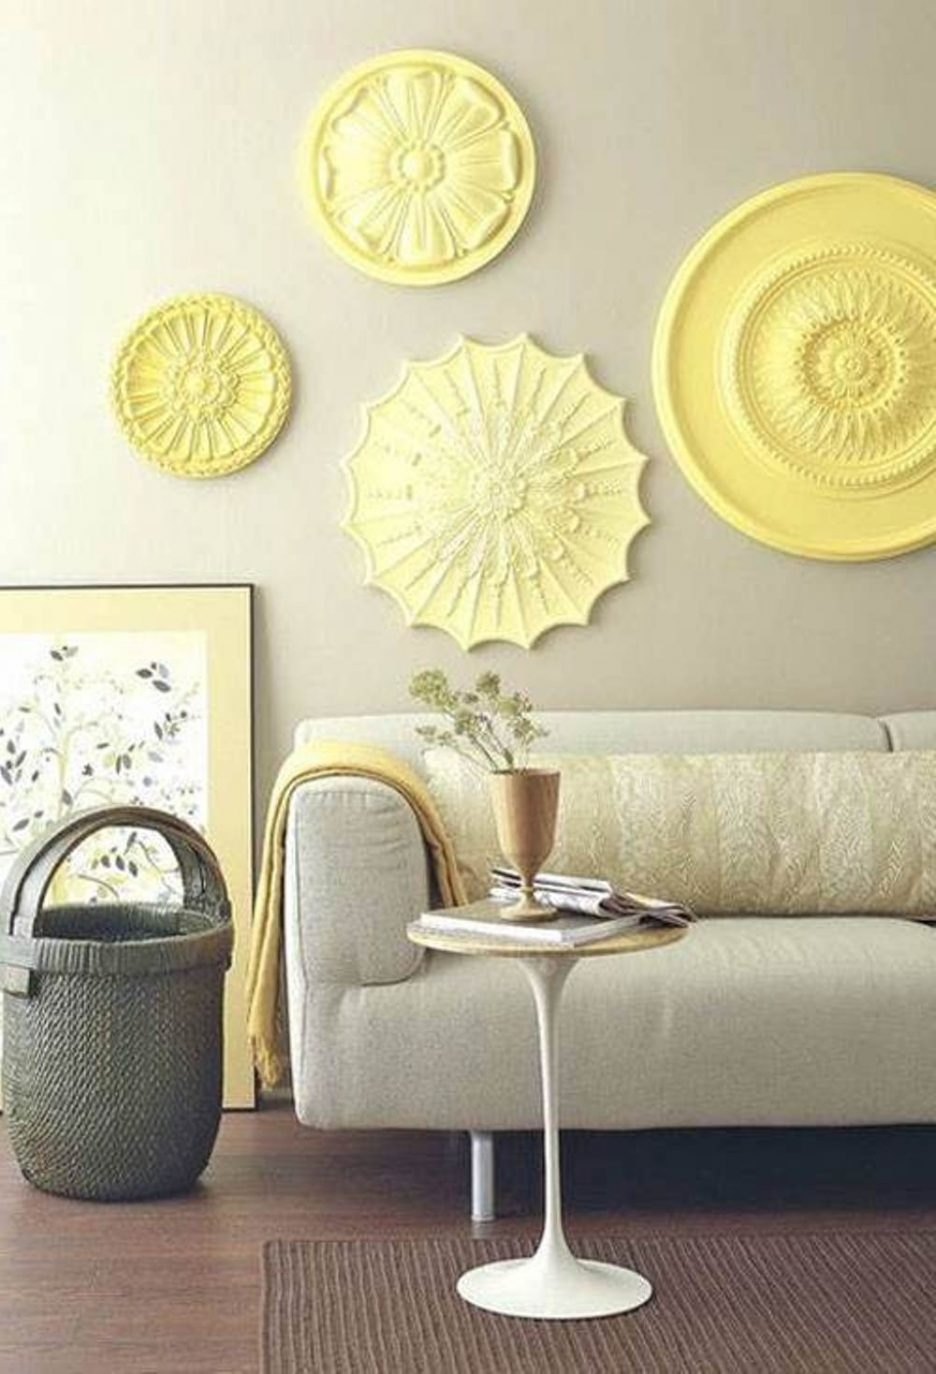 Living Room : Wonderful Wall Art Ideas For Living Room With Yellow Pertaining To Recent Fabric Circle Wall Art (View 8 of 15)